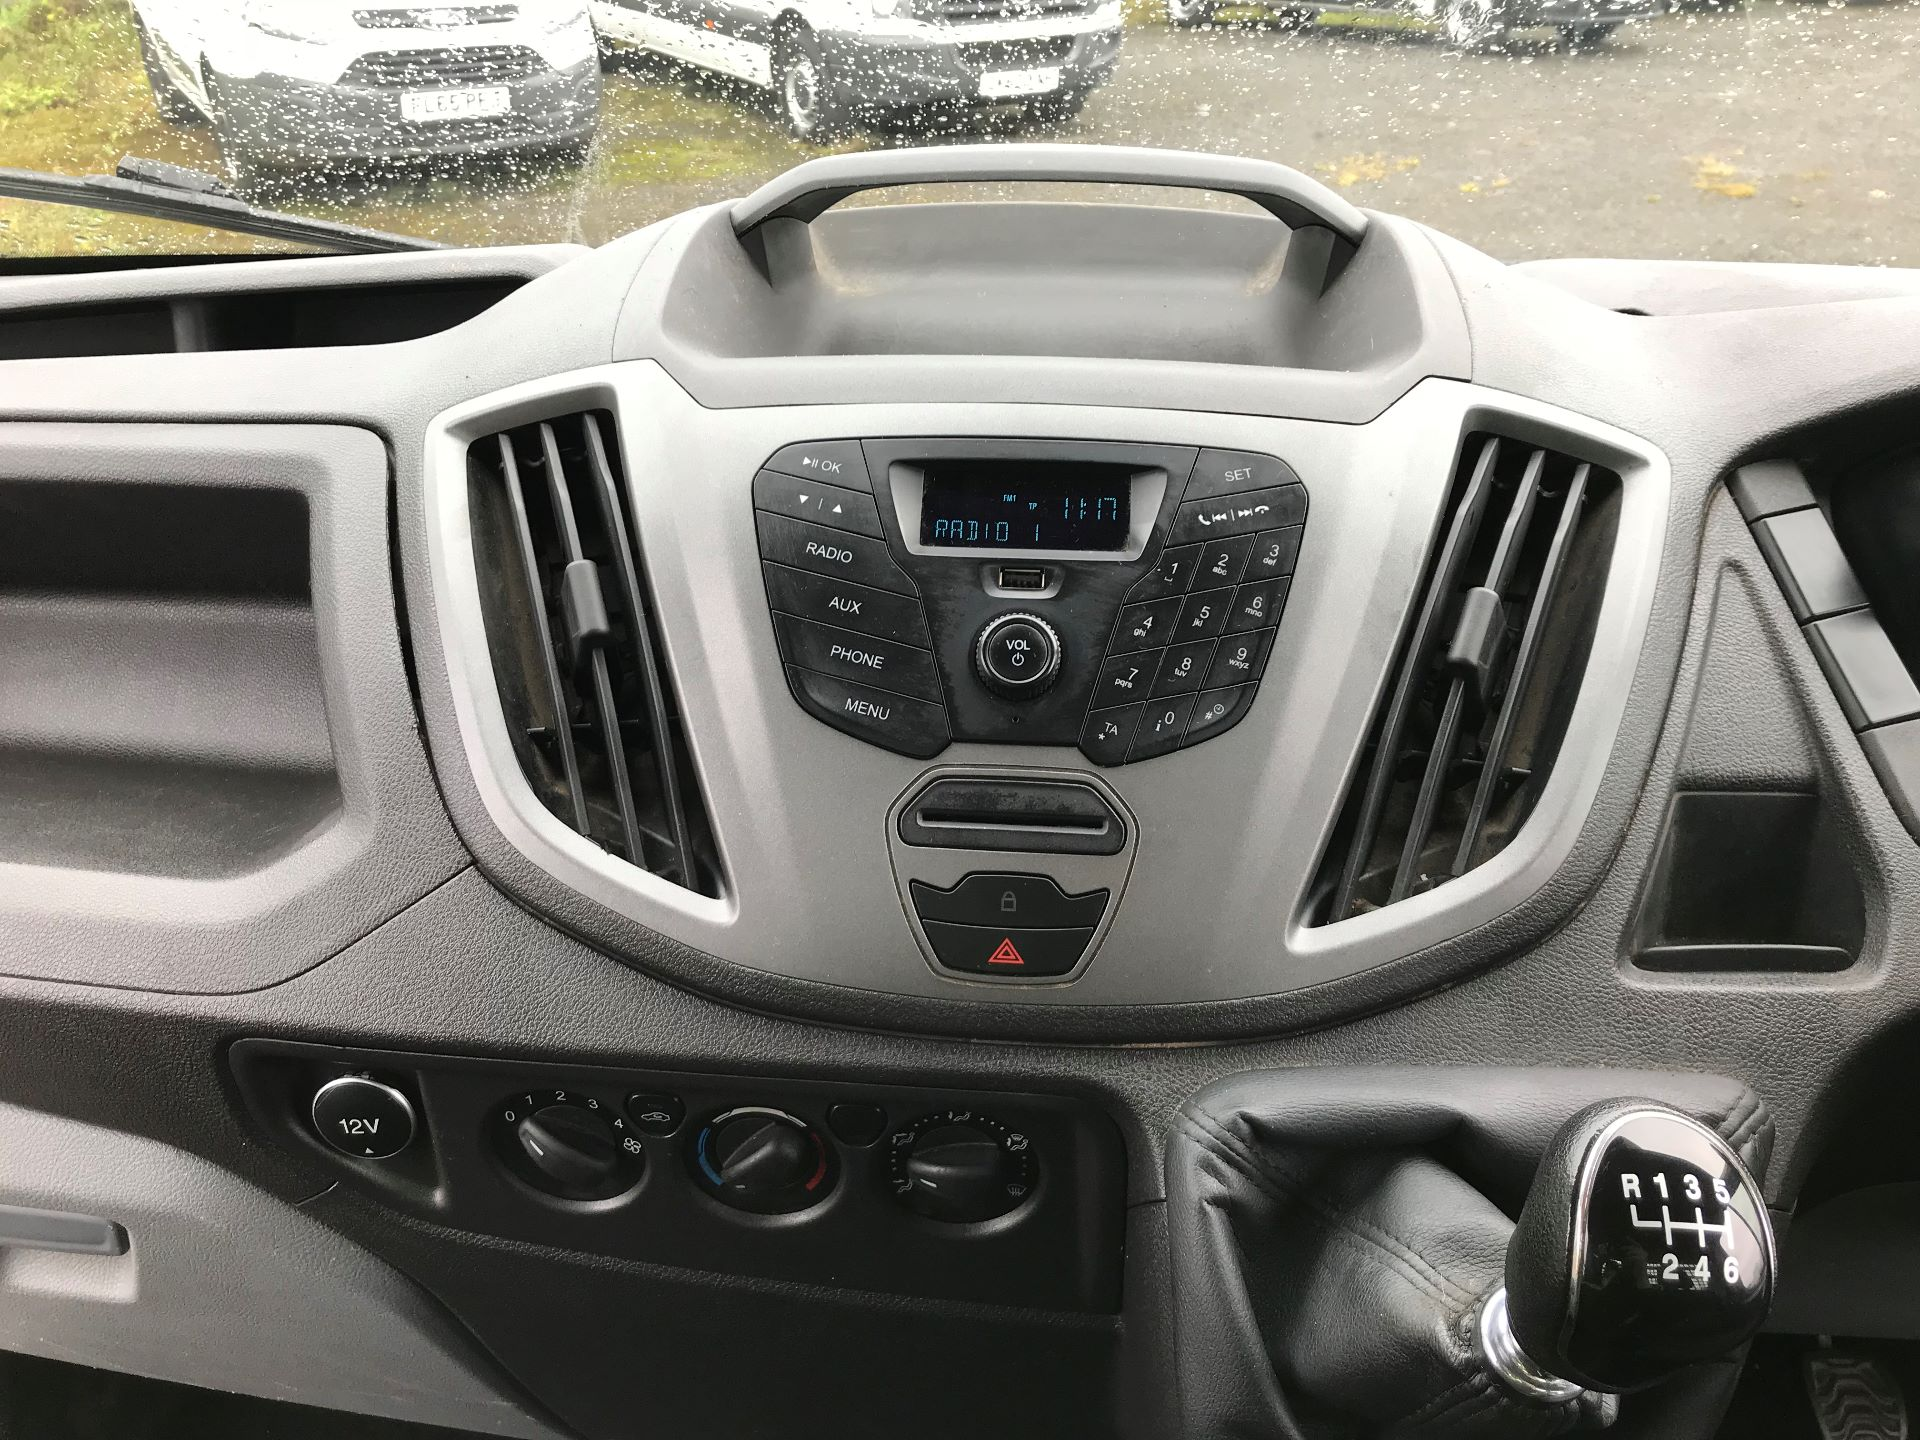 2016 Ford Transit 2.2 Tdci 125Ps Heavy Duty Chassis Cab *VALUE RANGE VEHICLE CONDITION REFLECTED IN PRICE*  (YS66SOE) Image 14